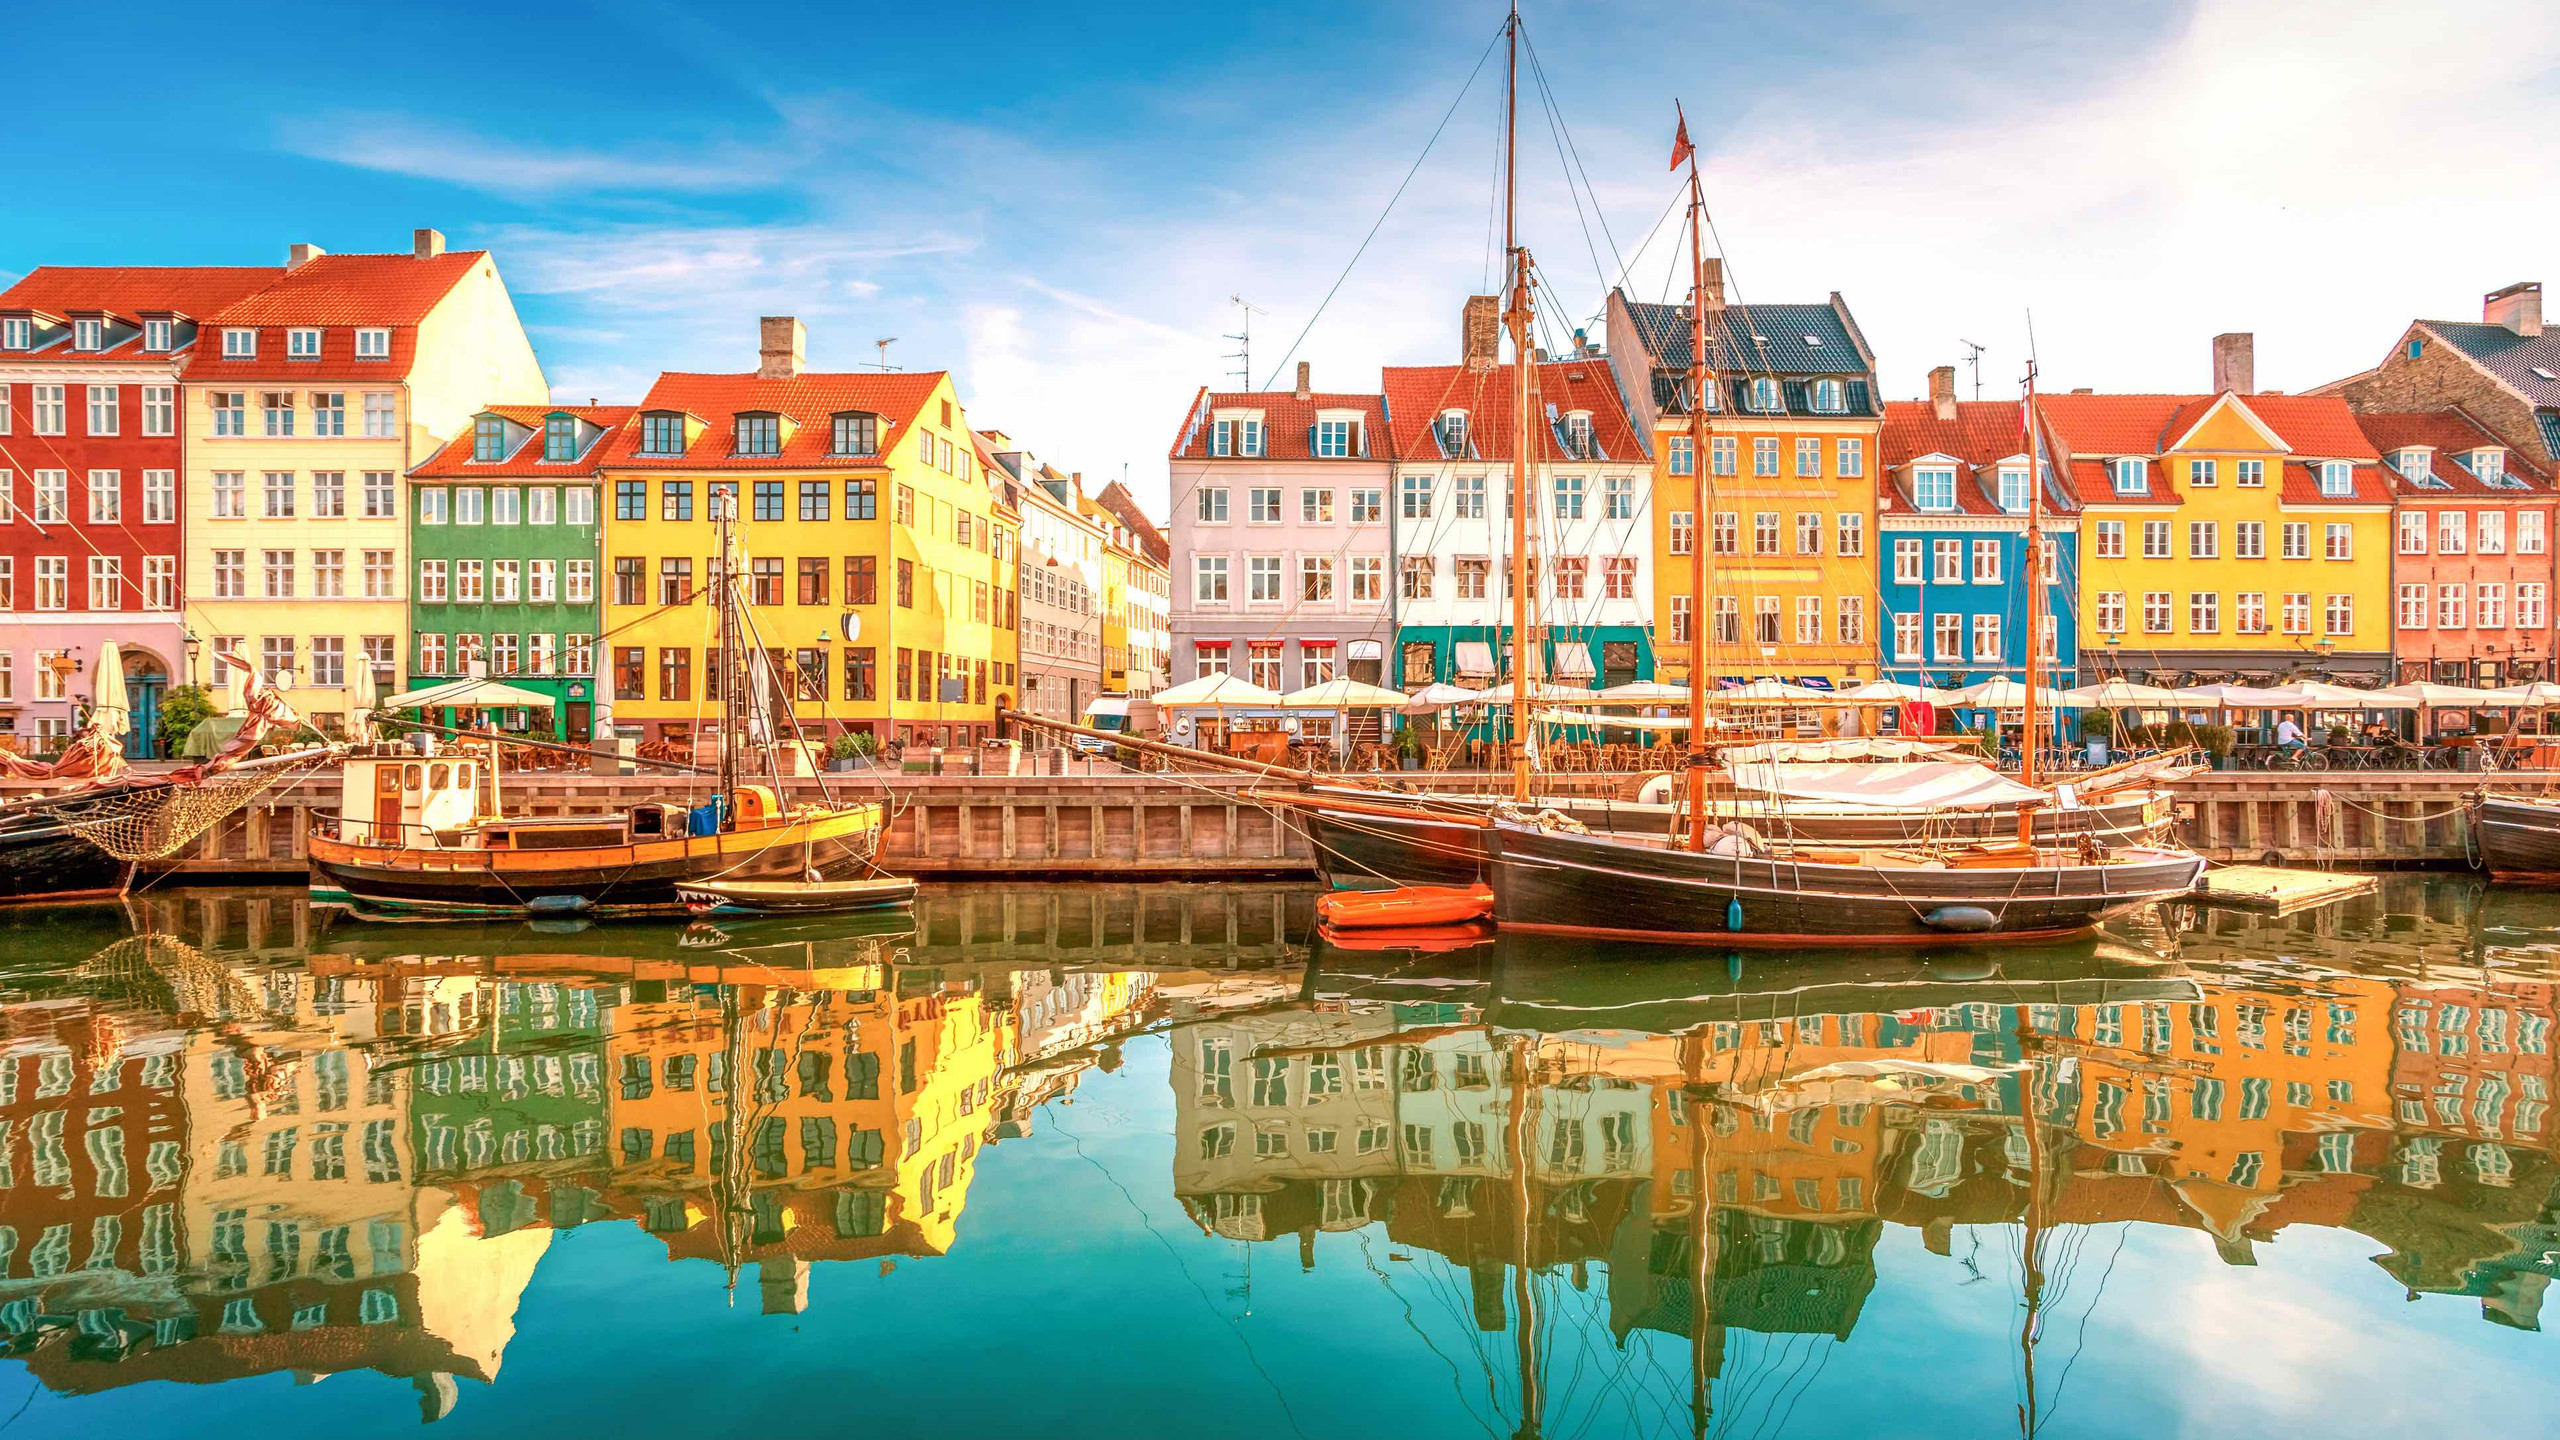 Clean, precise and planned, the district of Nyhavn in Copenhagen, Denmark.